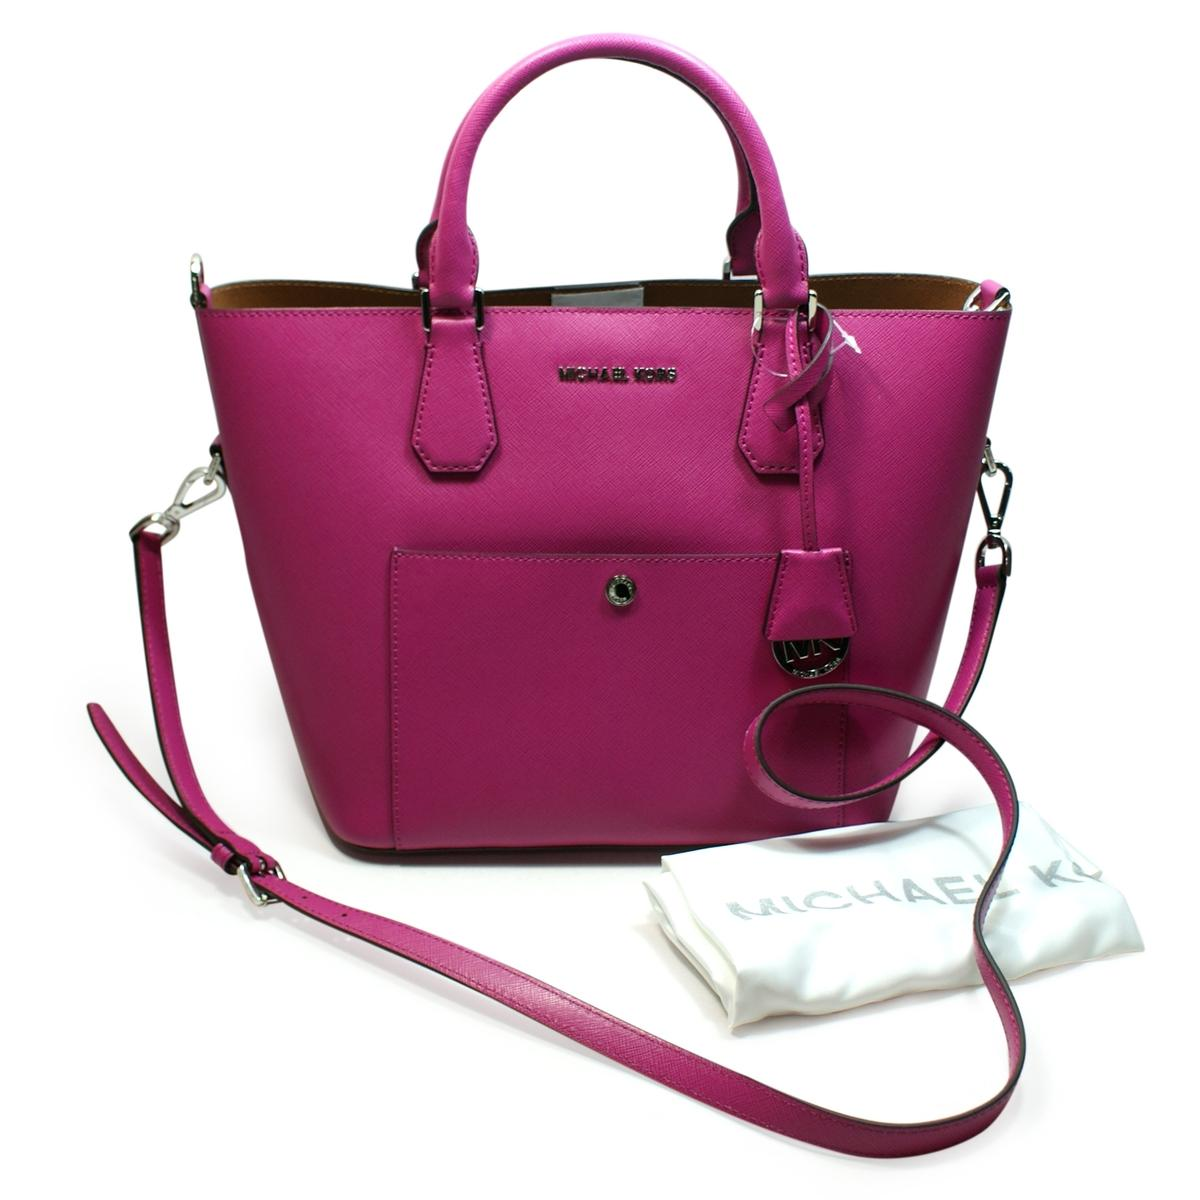 132797a37af8ea Michael Kors Greenwich Leather Grab Bag/ Crossbody Bag Fuschia ...